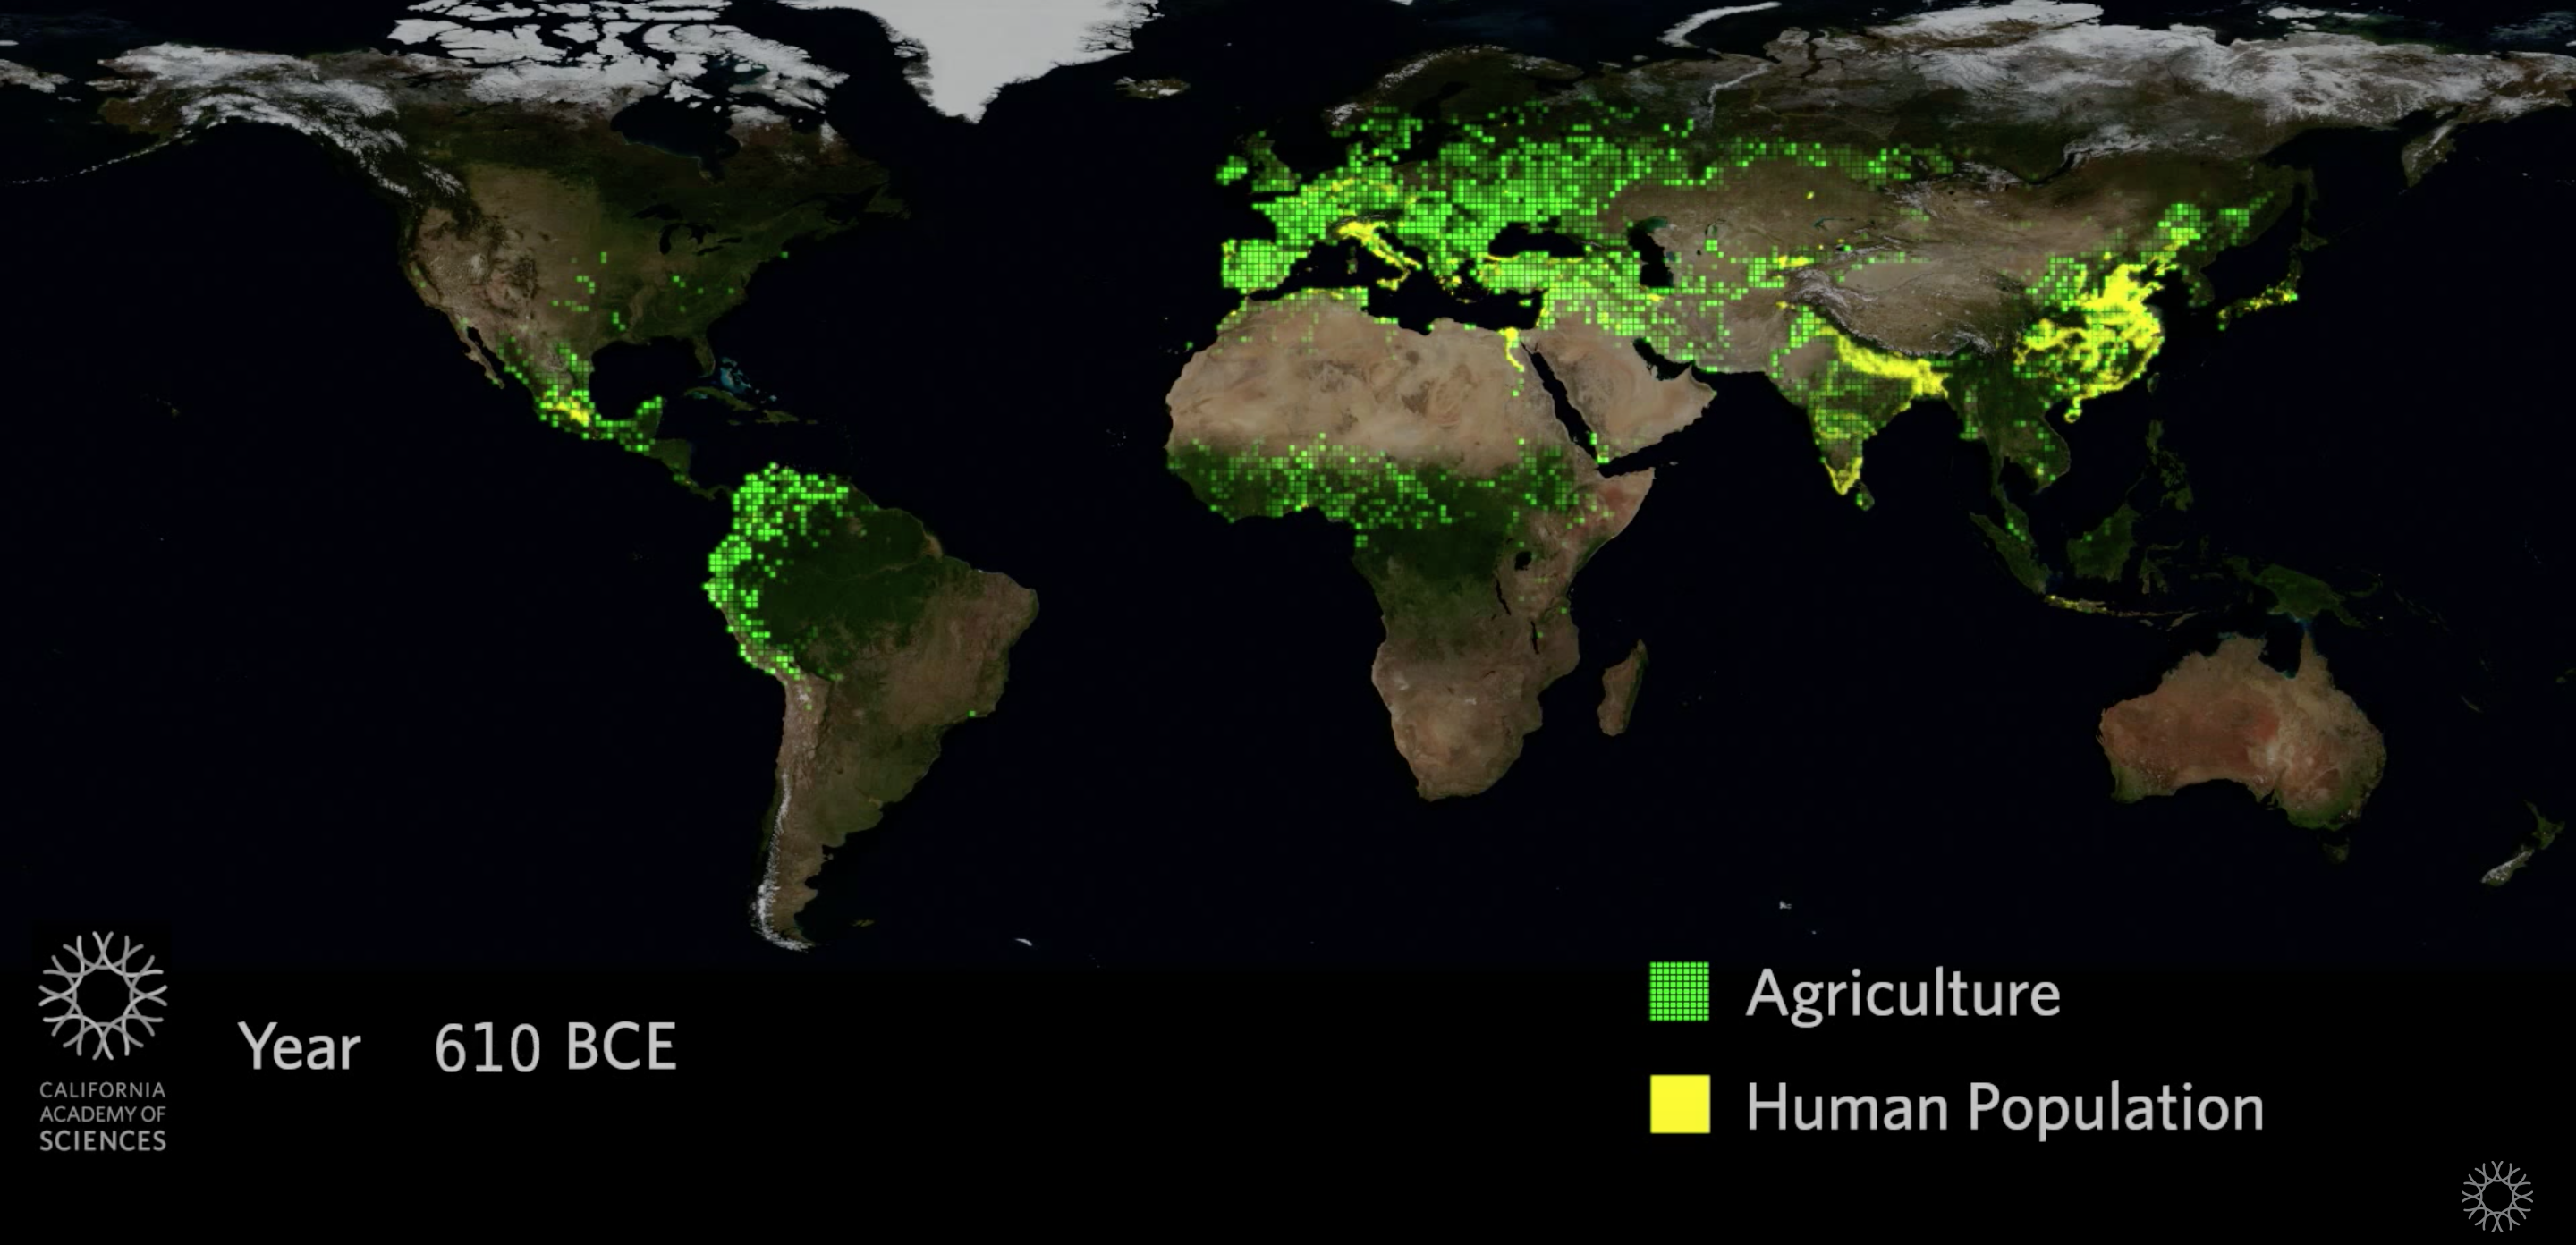 world map of human agriculture and population around 600 BCE at the end of ap world history period 1